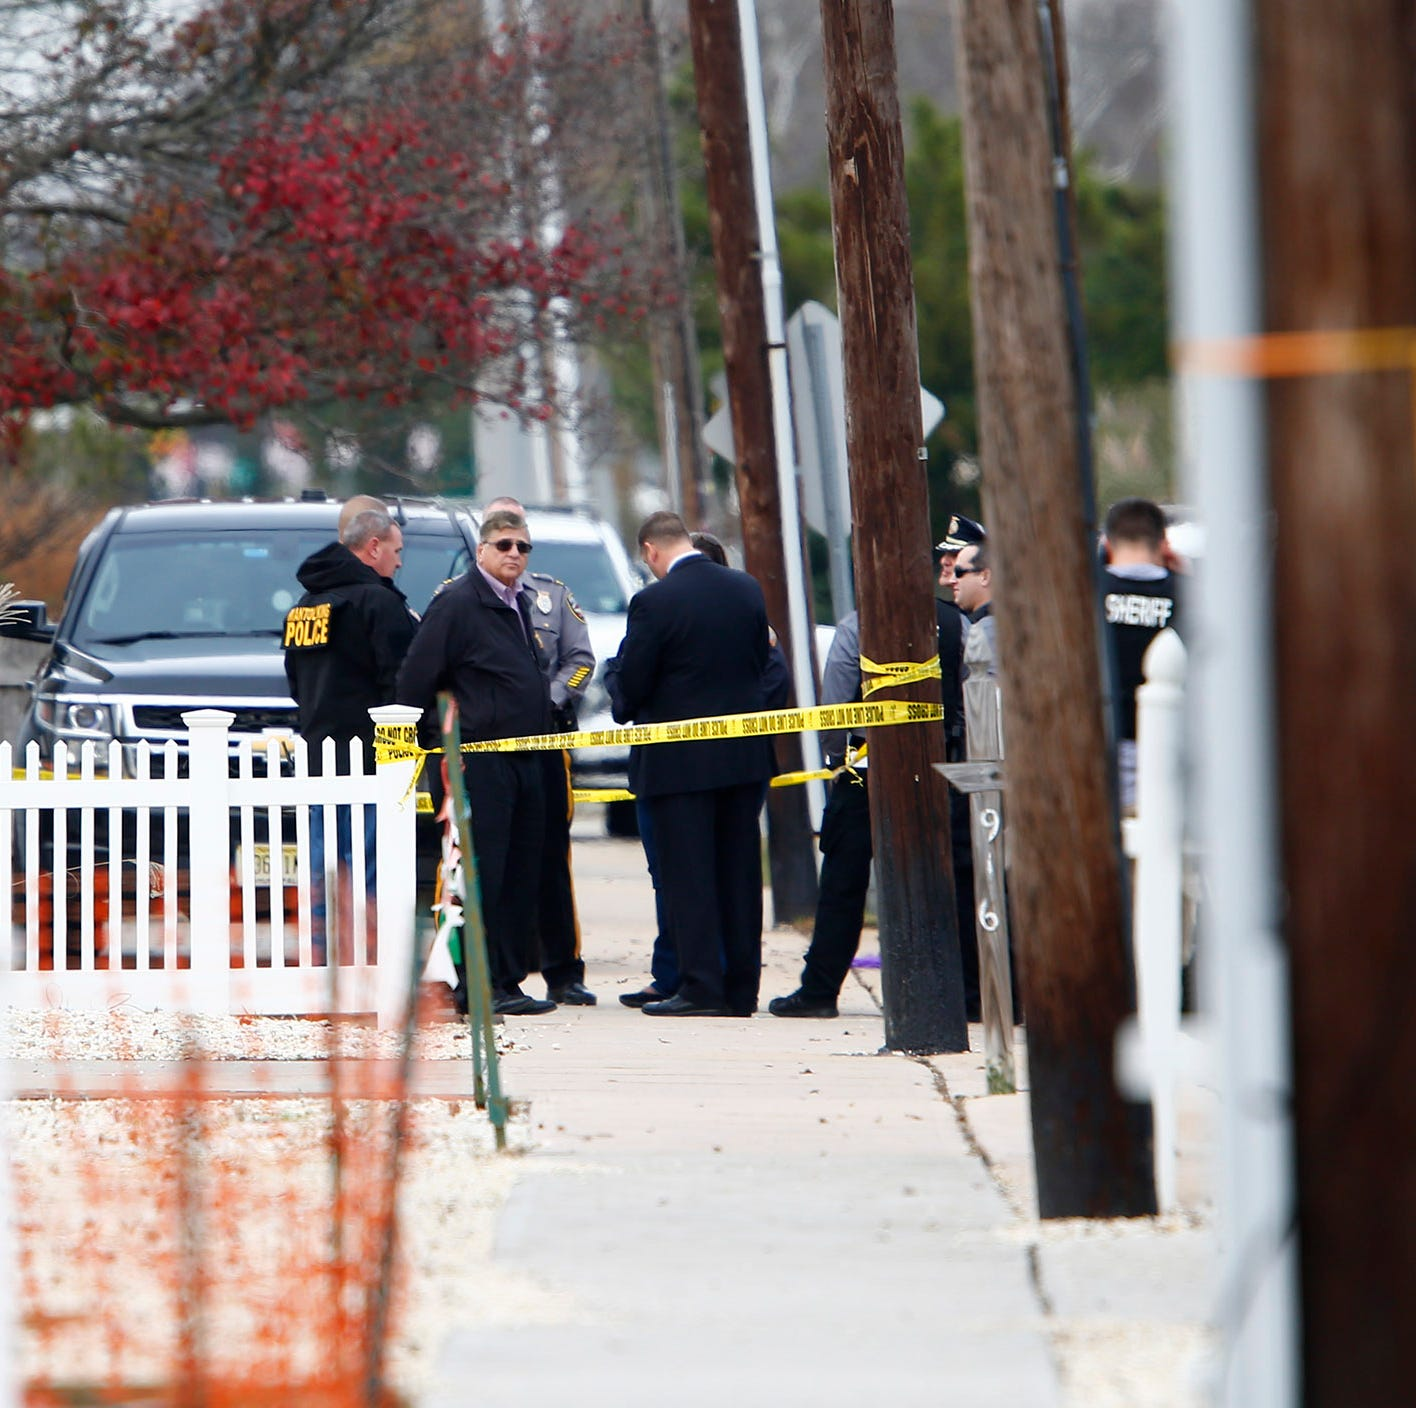 Police-involved shooting in Mantoloking; K-9 also injured at scene